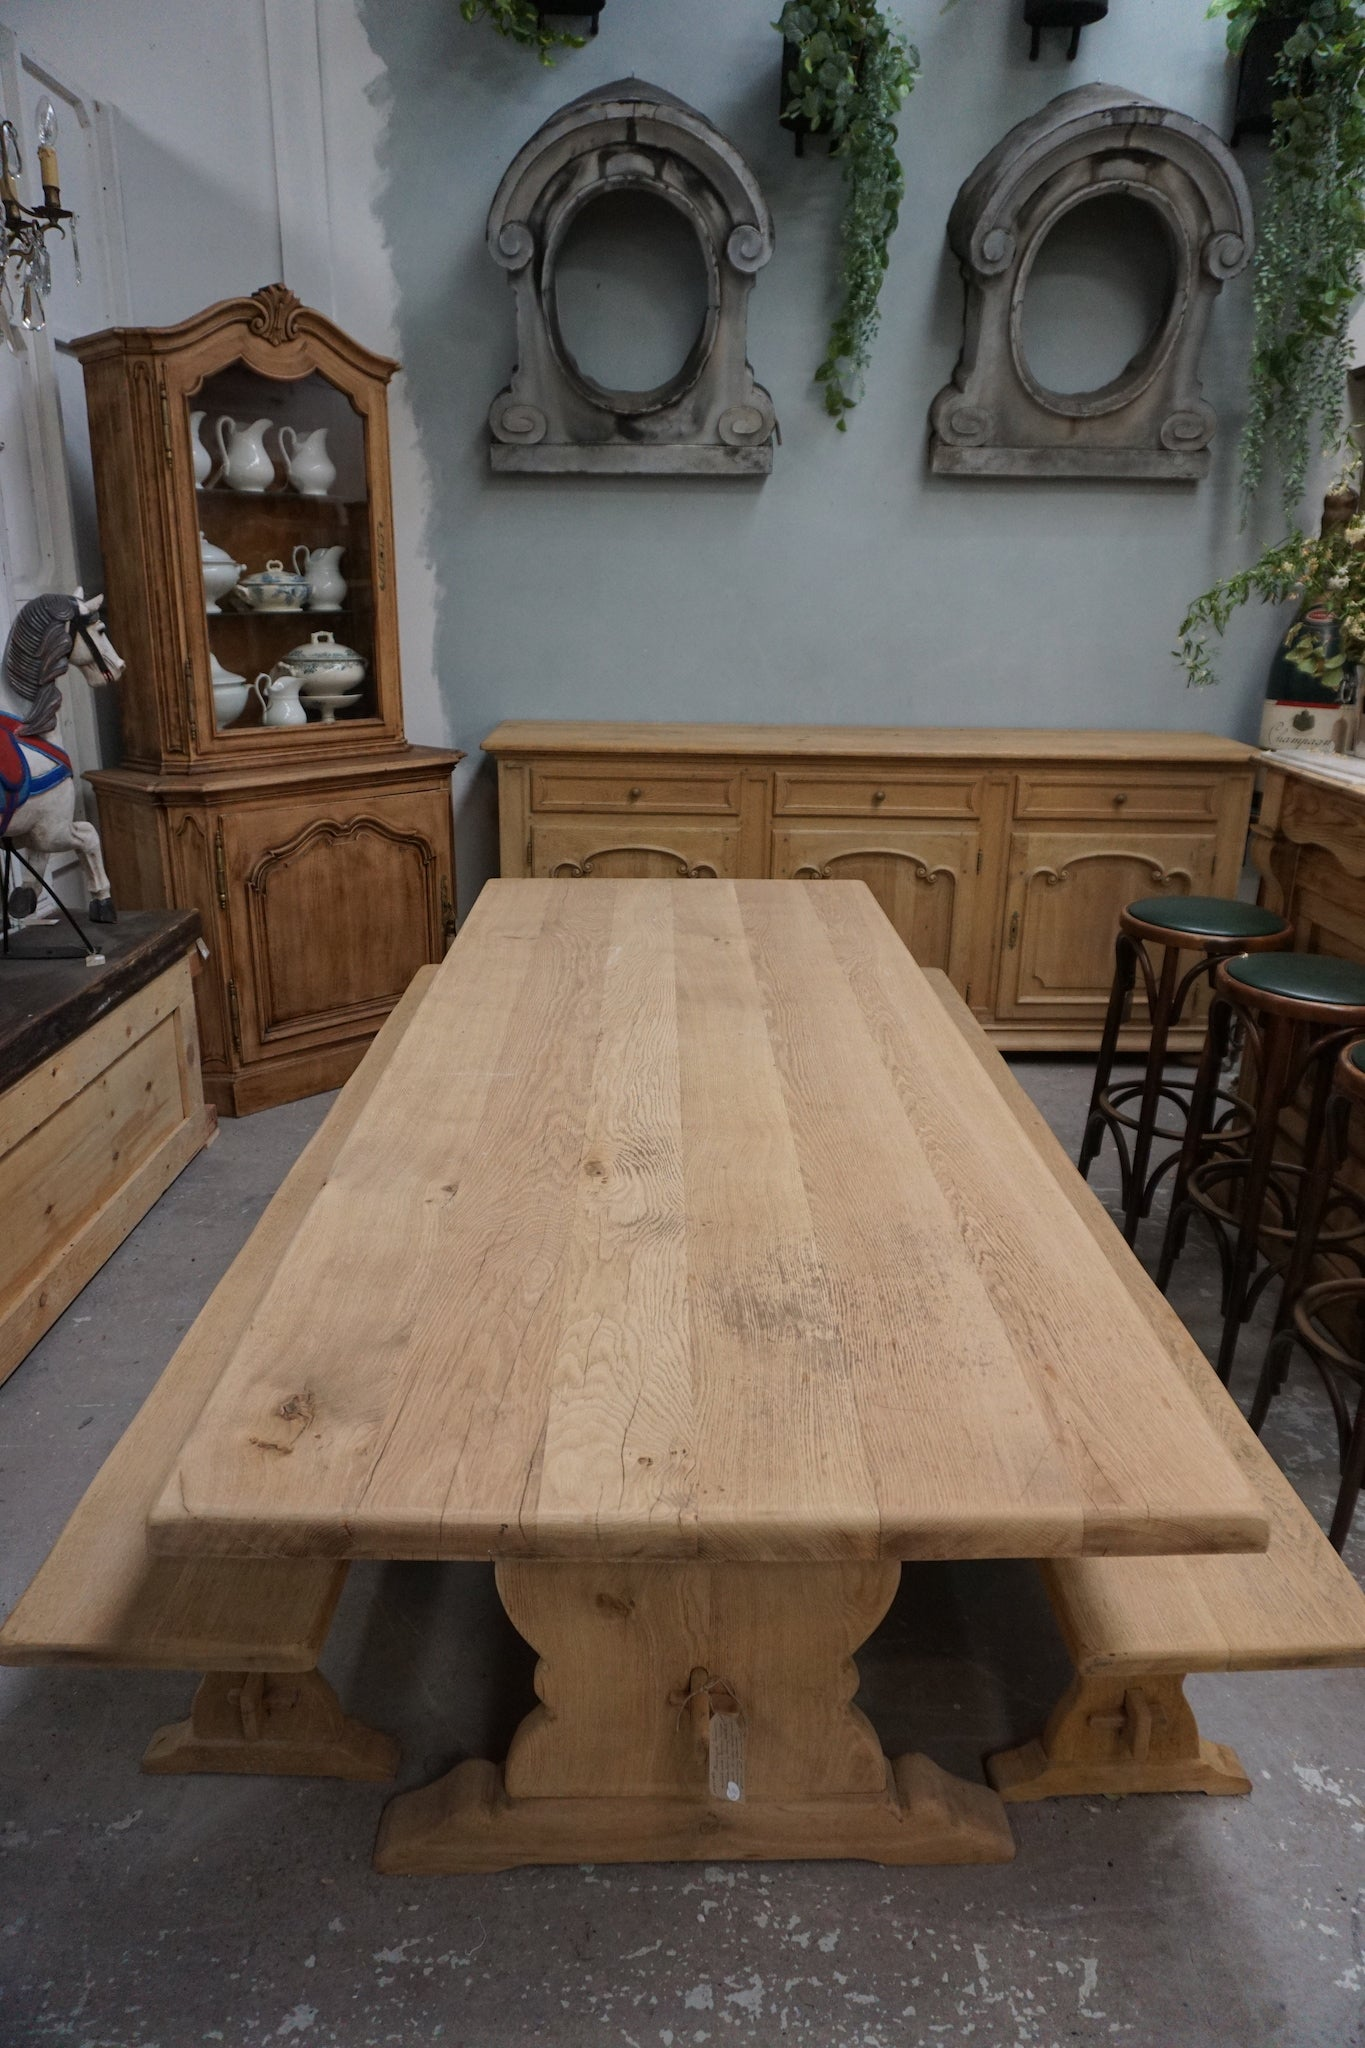 Huge Solid Oak Dining Table with Two Bench Seats